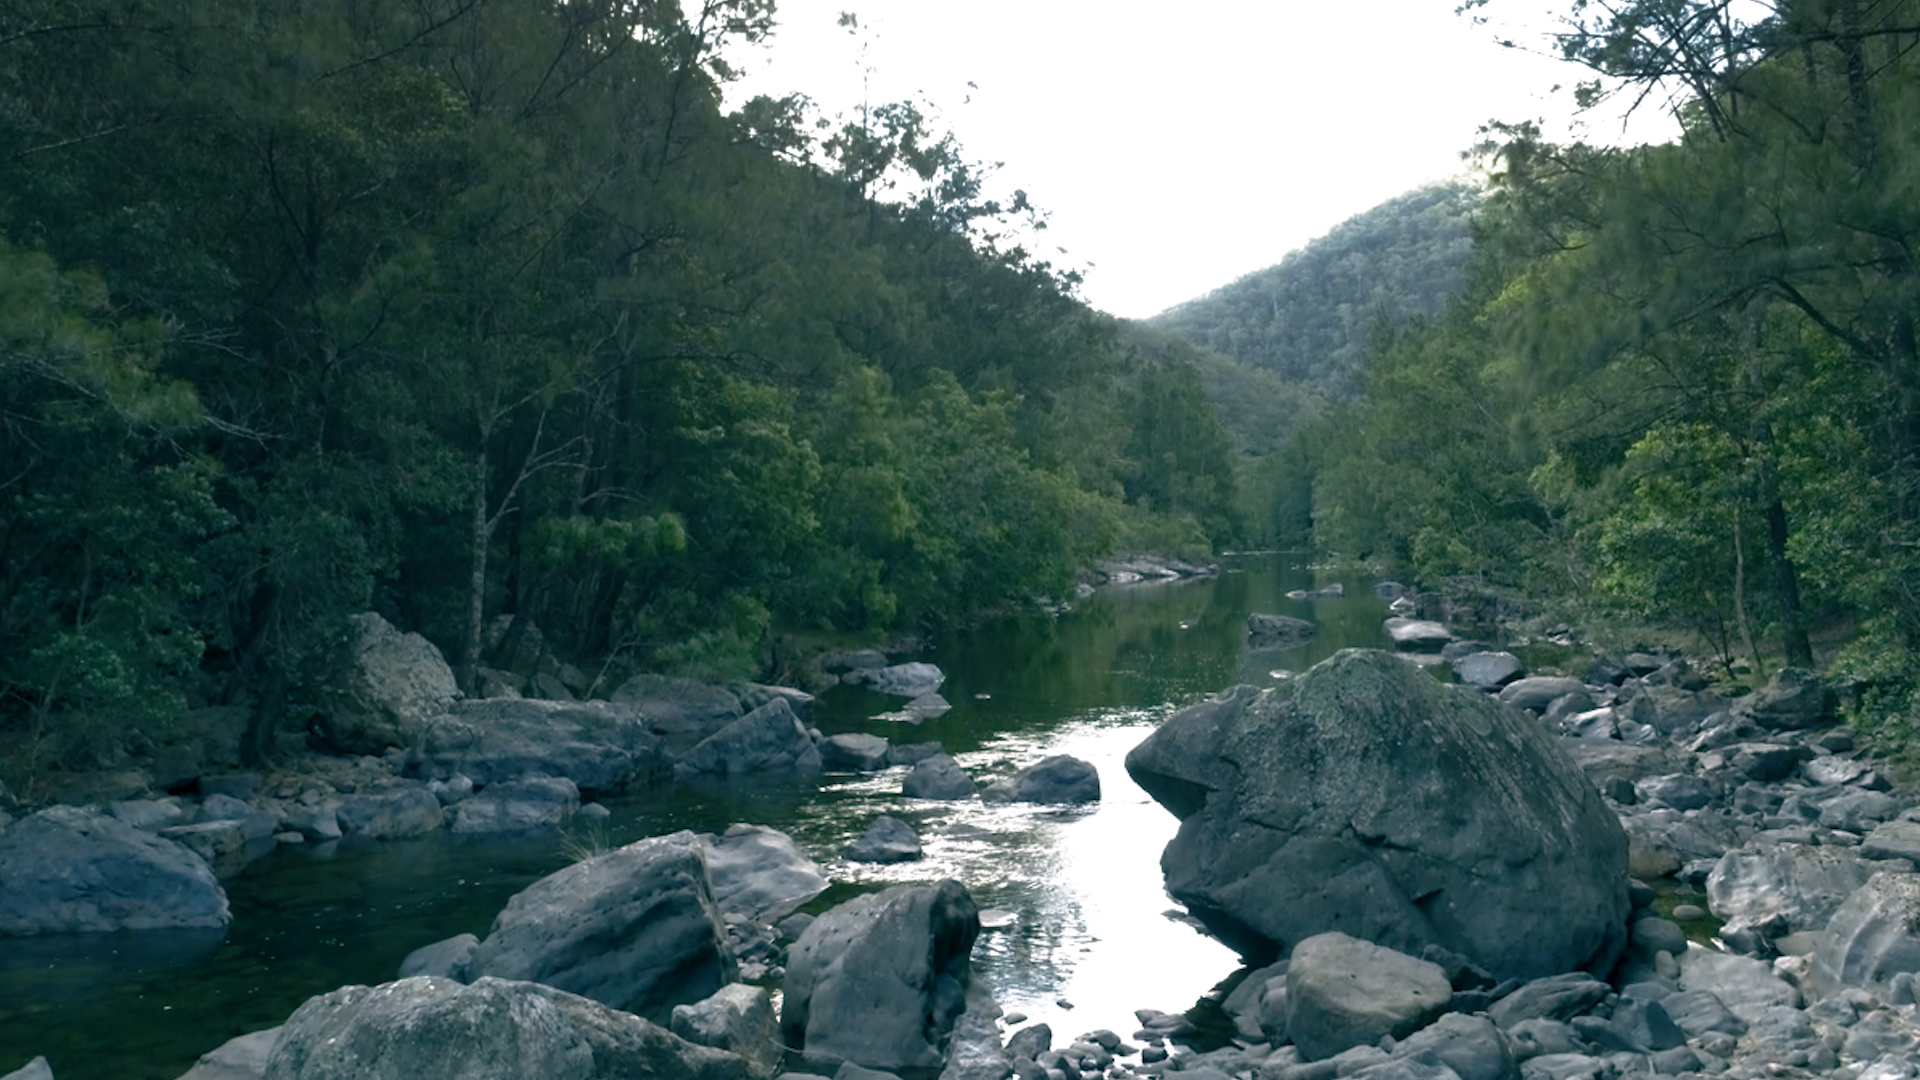 NSW Govt introduces law to allow flooding of World Heritage-listed Blue Mountains National Park  - Justin Field